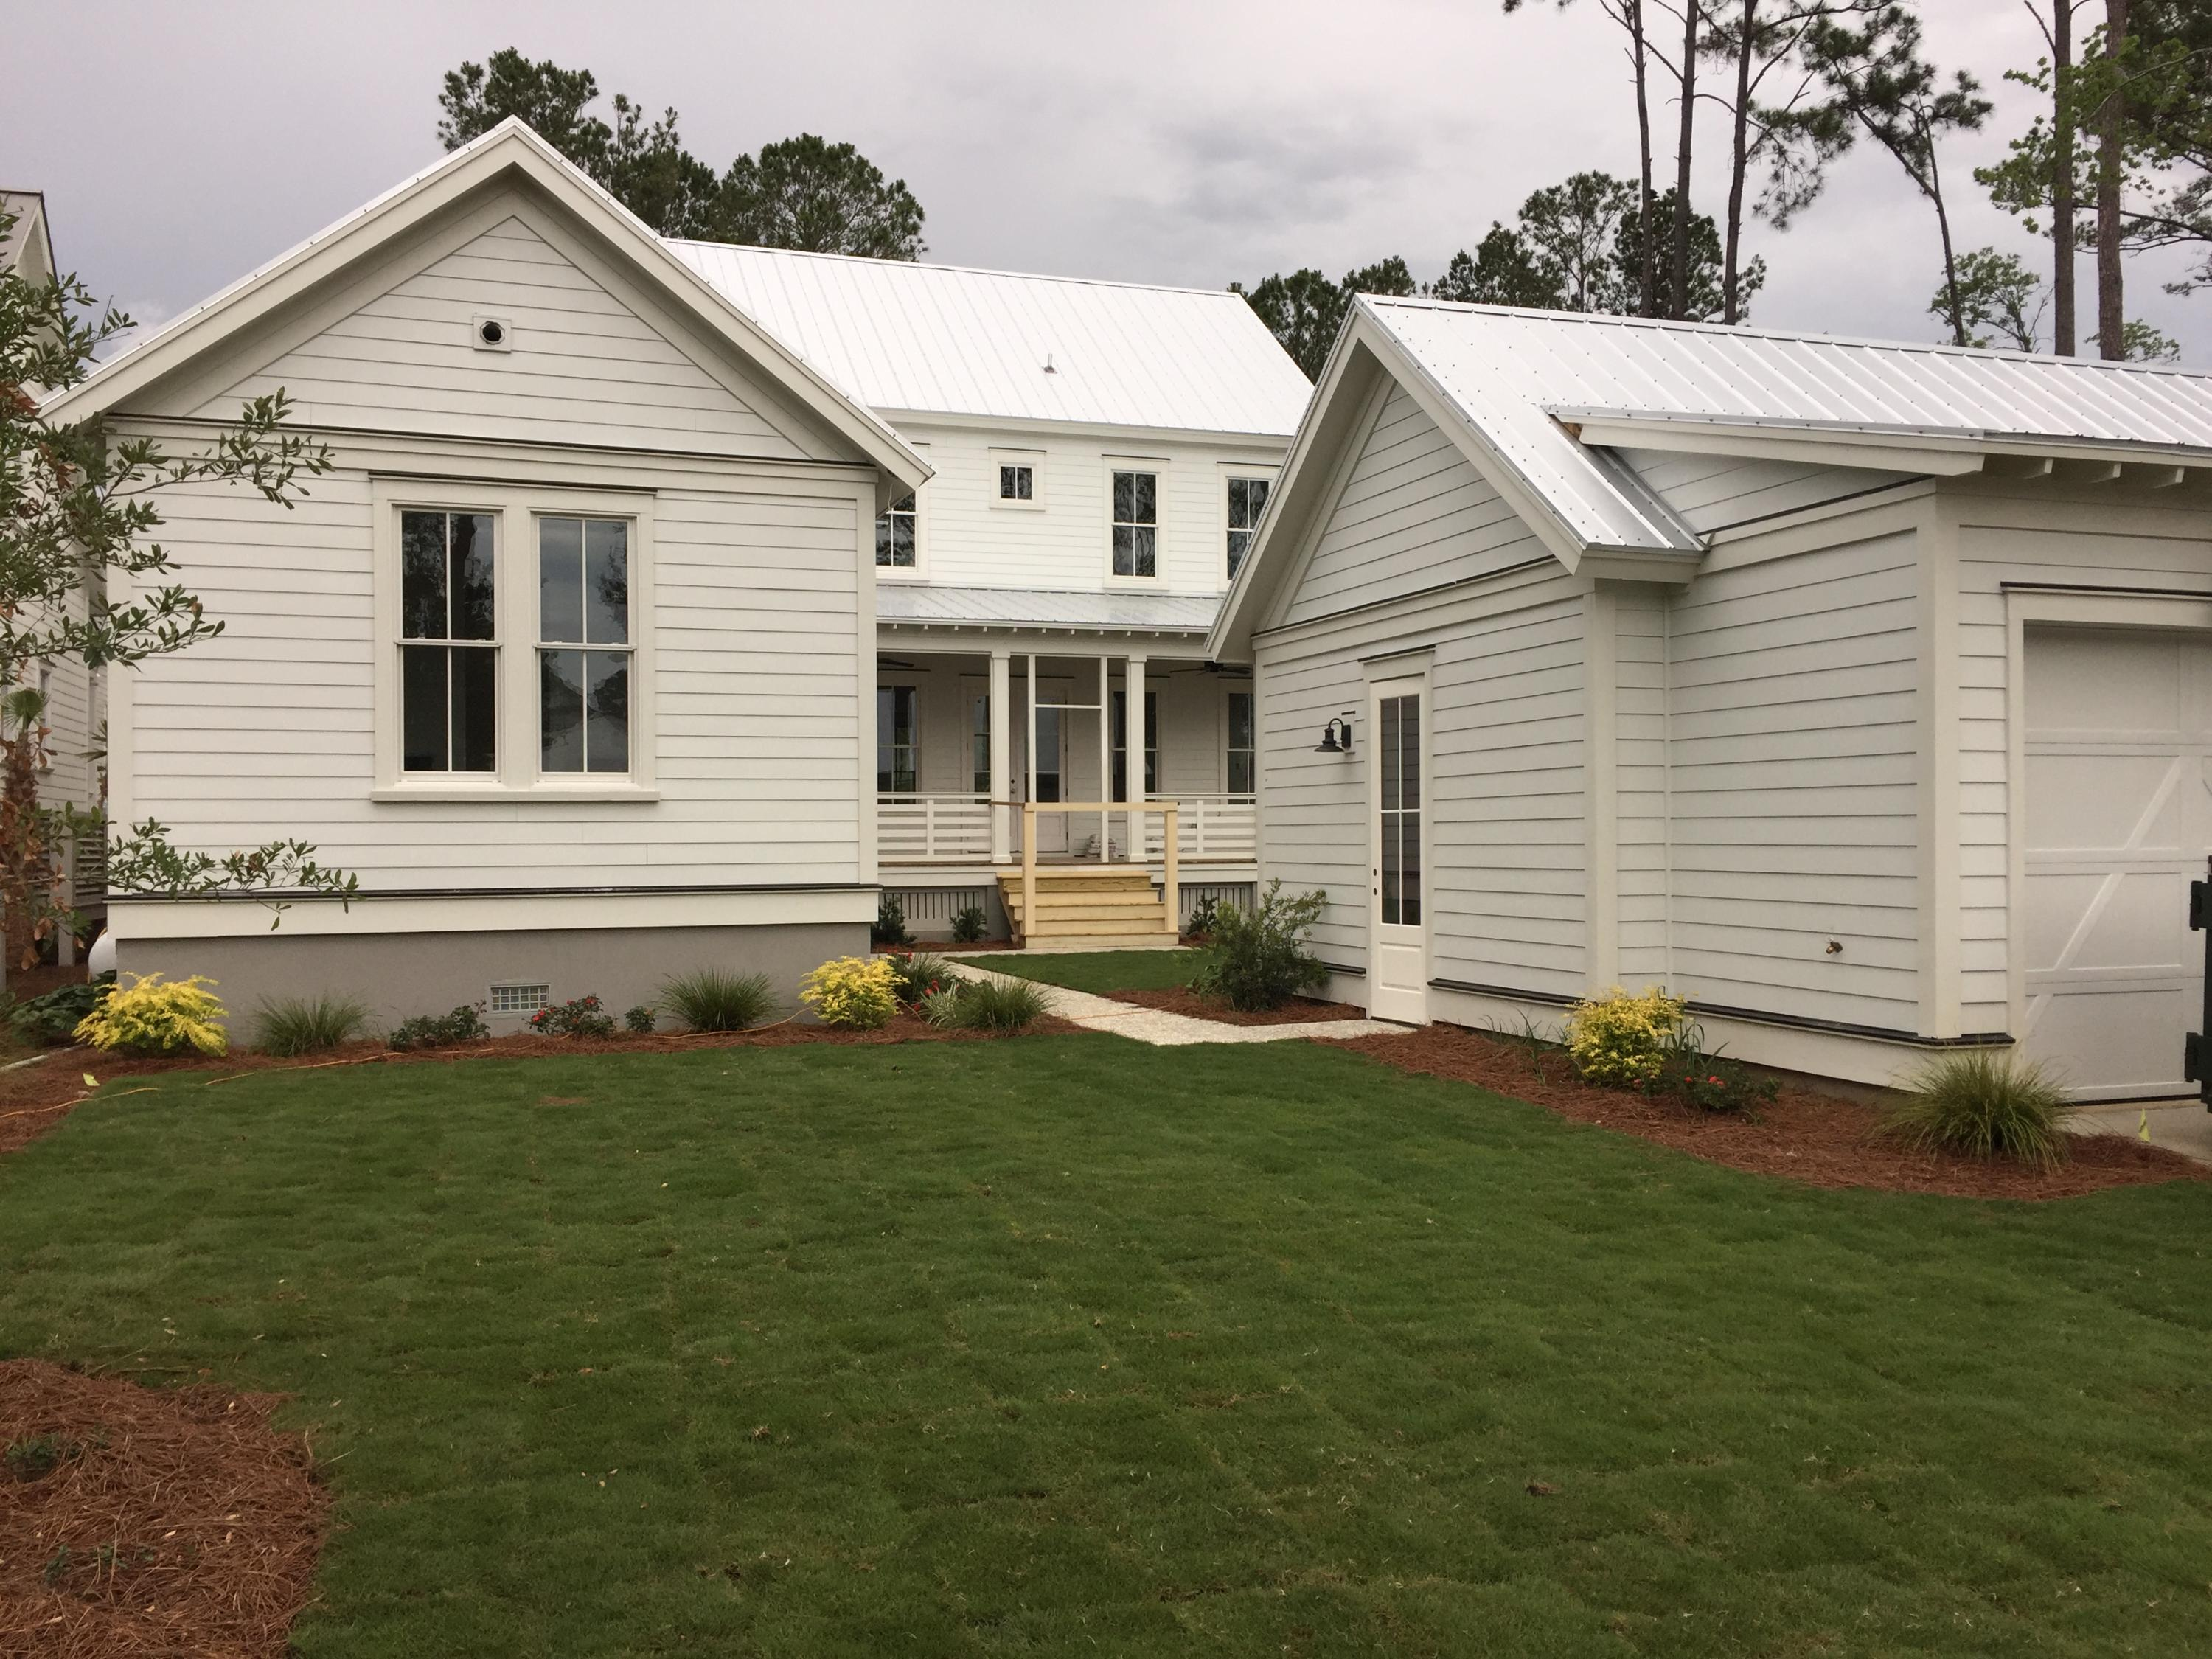 Home for sale 373 Bridgetown Pass , Belle Hall, Mt. Pleasant, SC